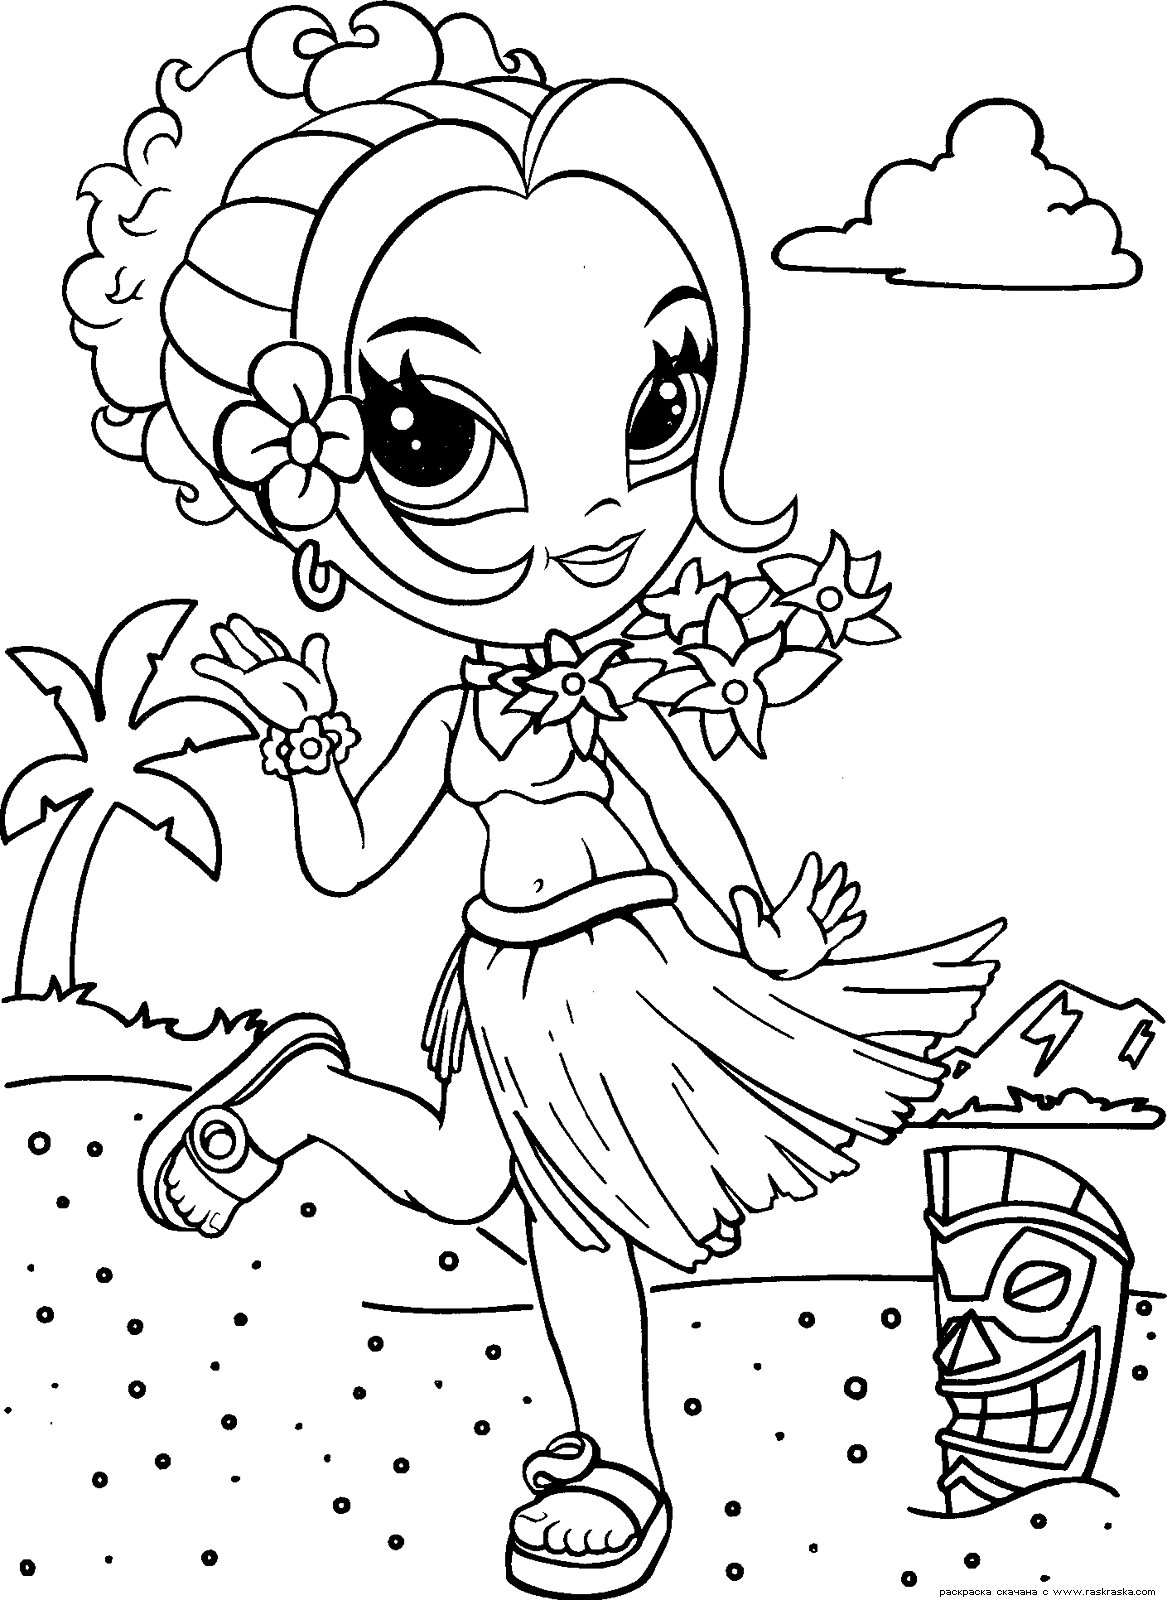 colouring pages to print free lisa frank animals coloring pages download and print for free to pages free colouring print